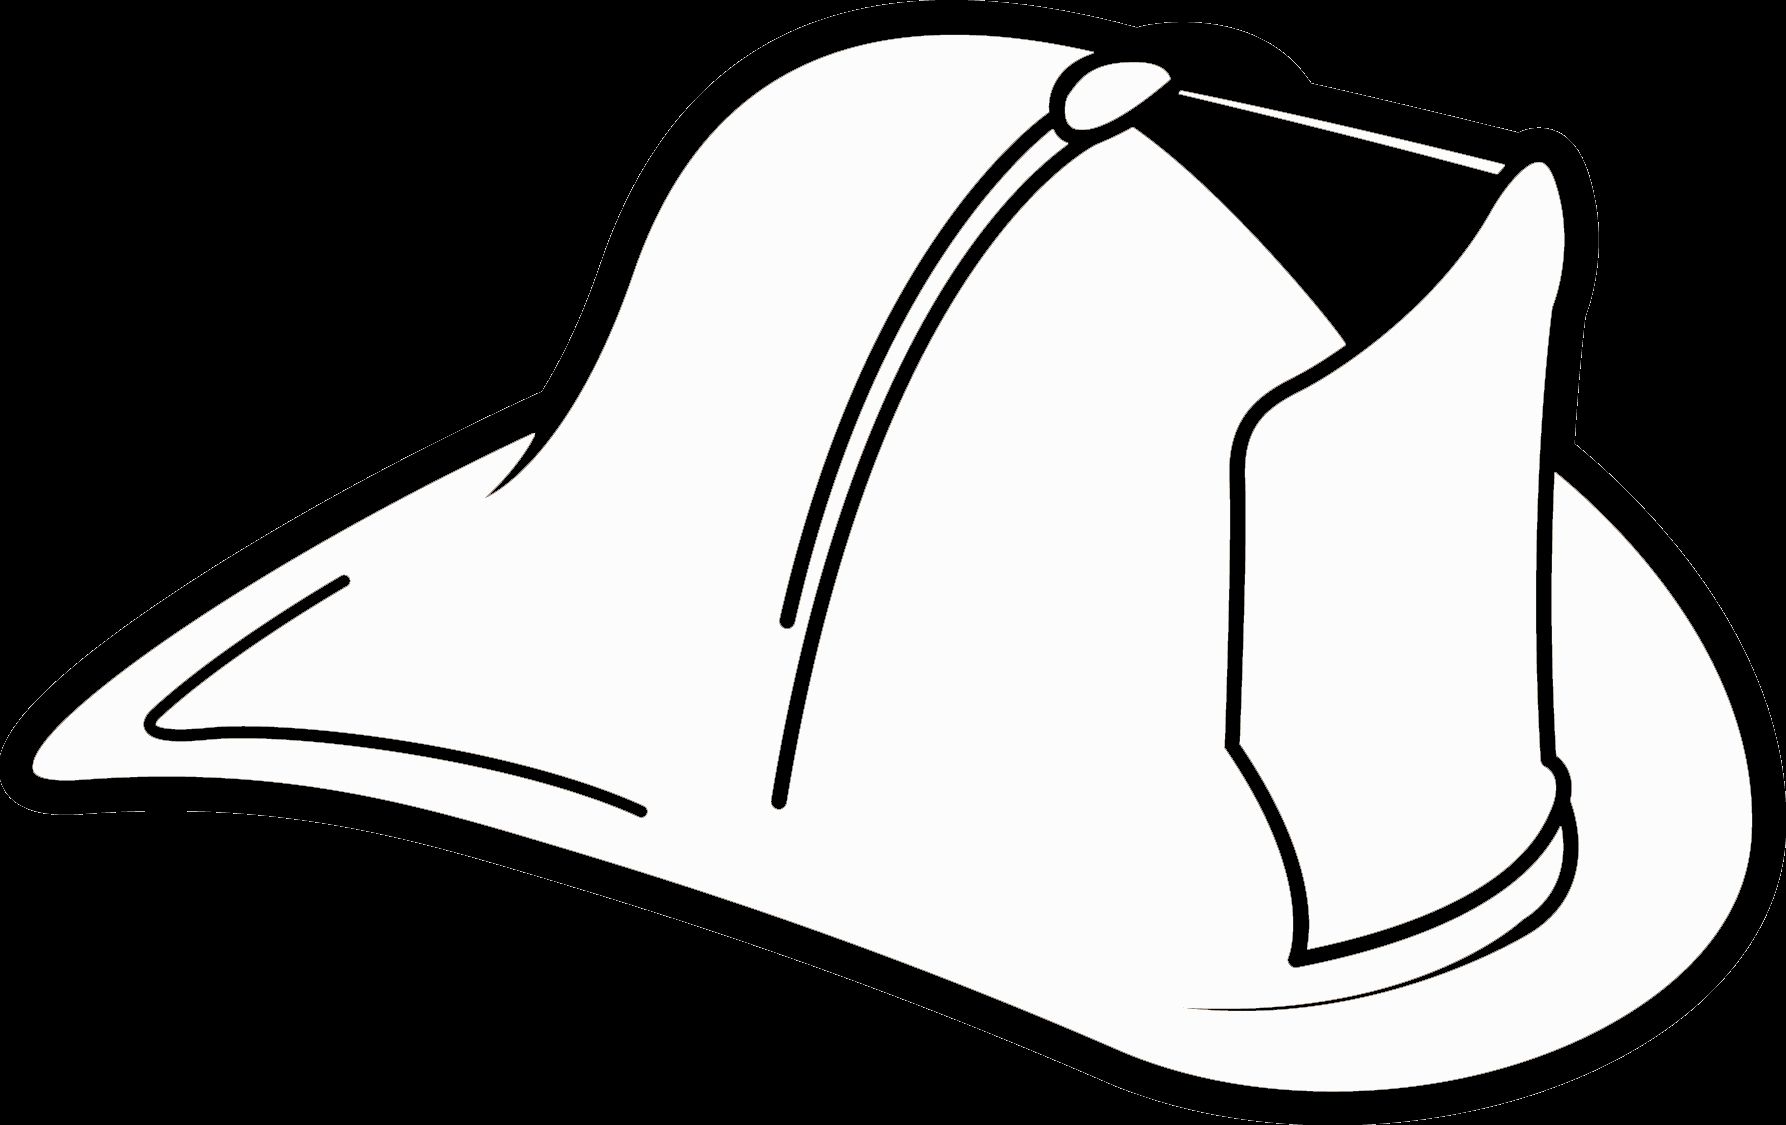 Firefighter Coloring Page - Firefighter Hat Coloring Page Coloring Home